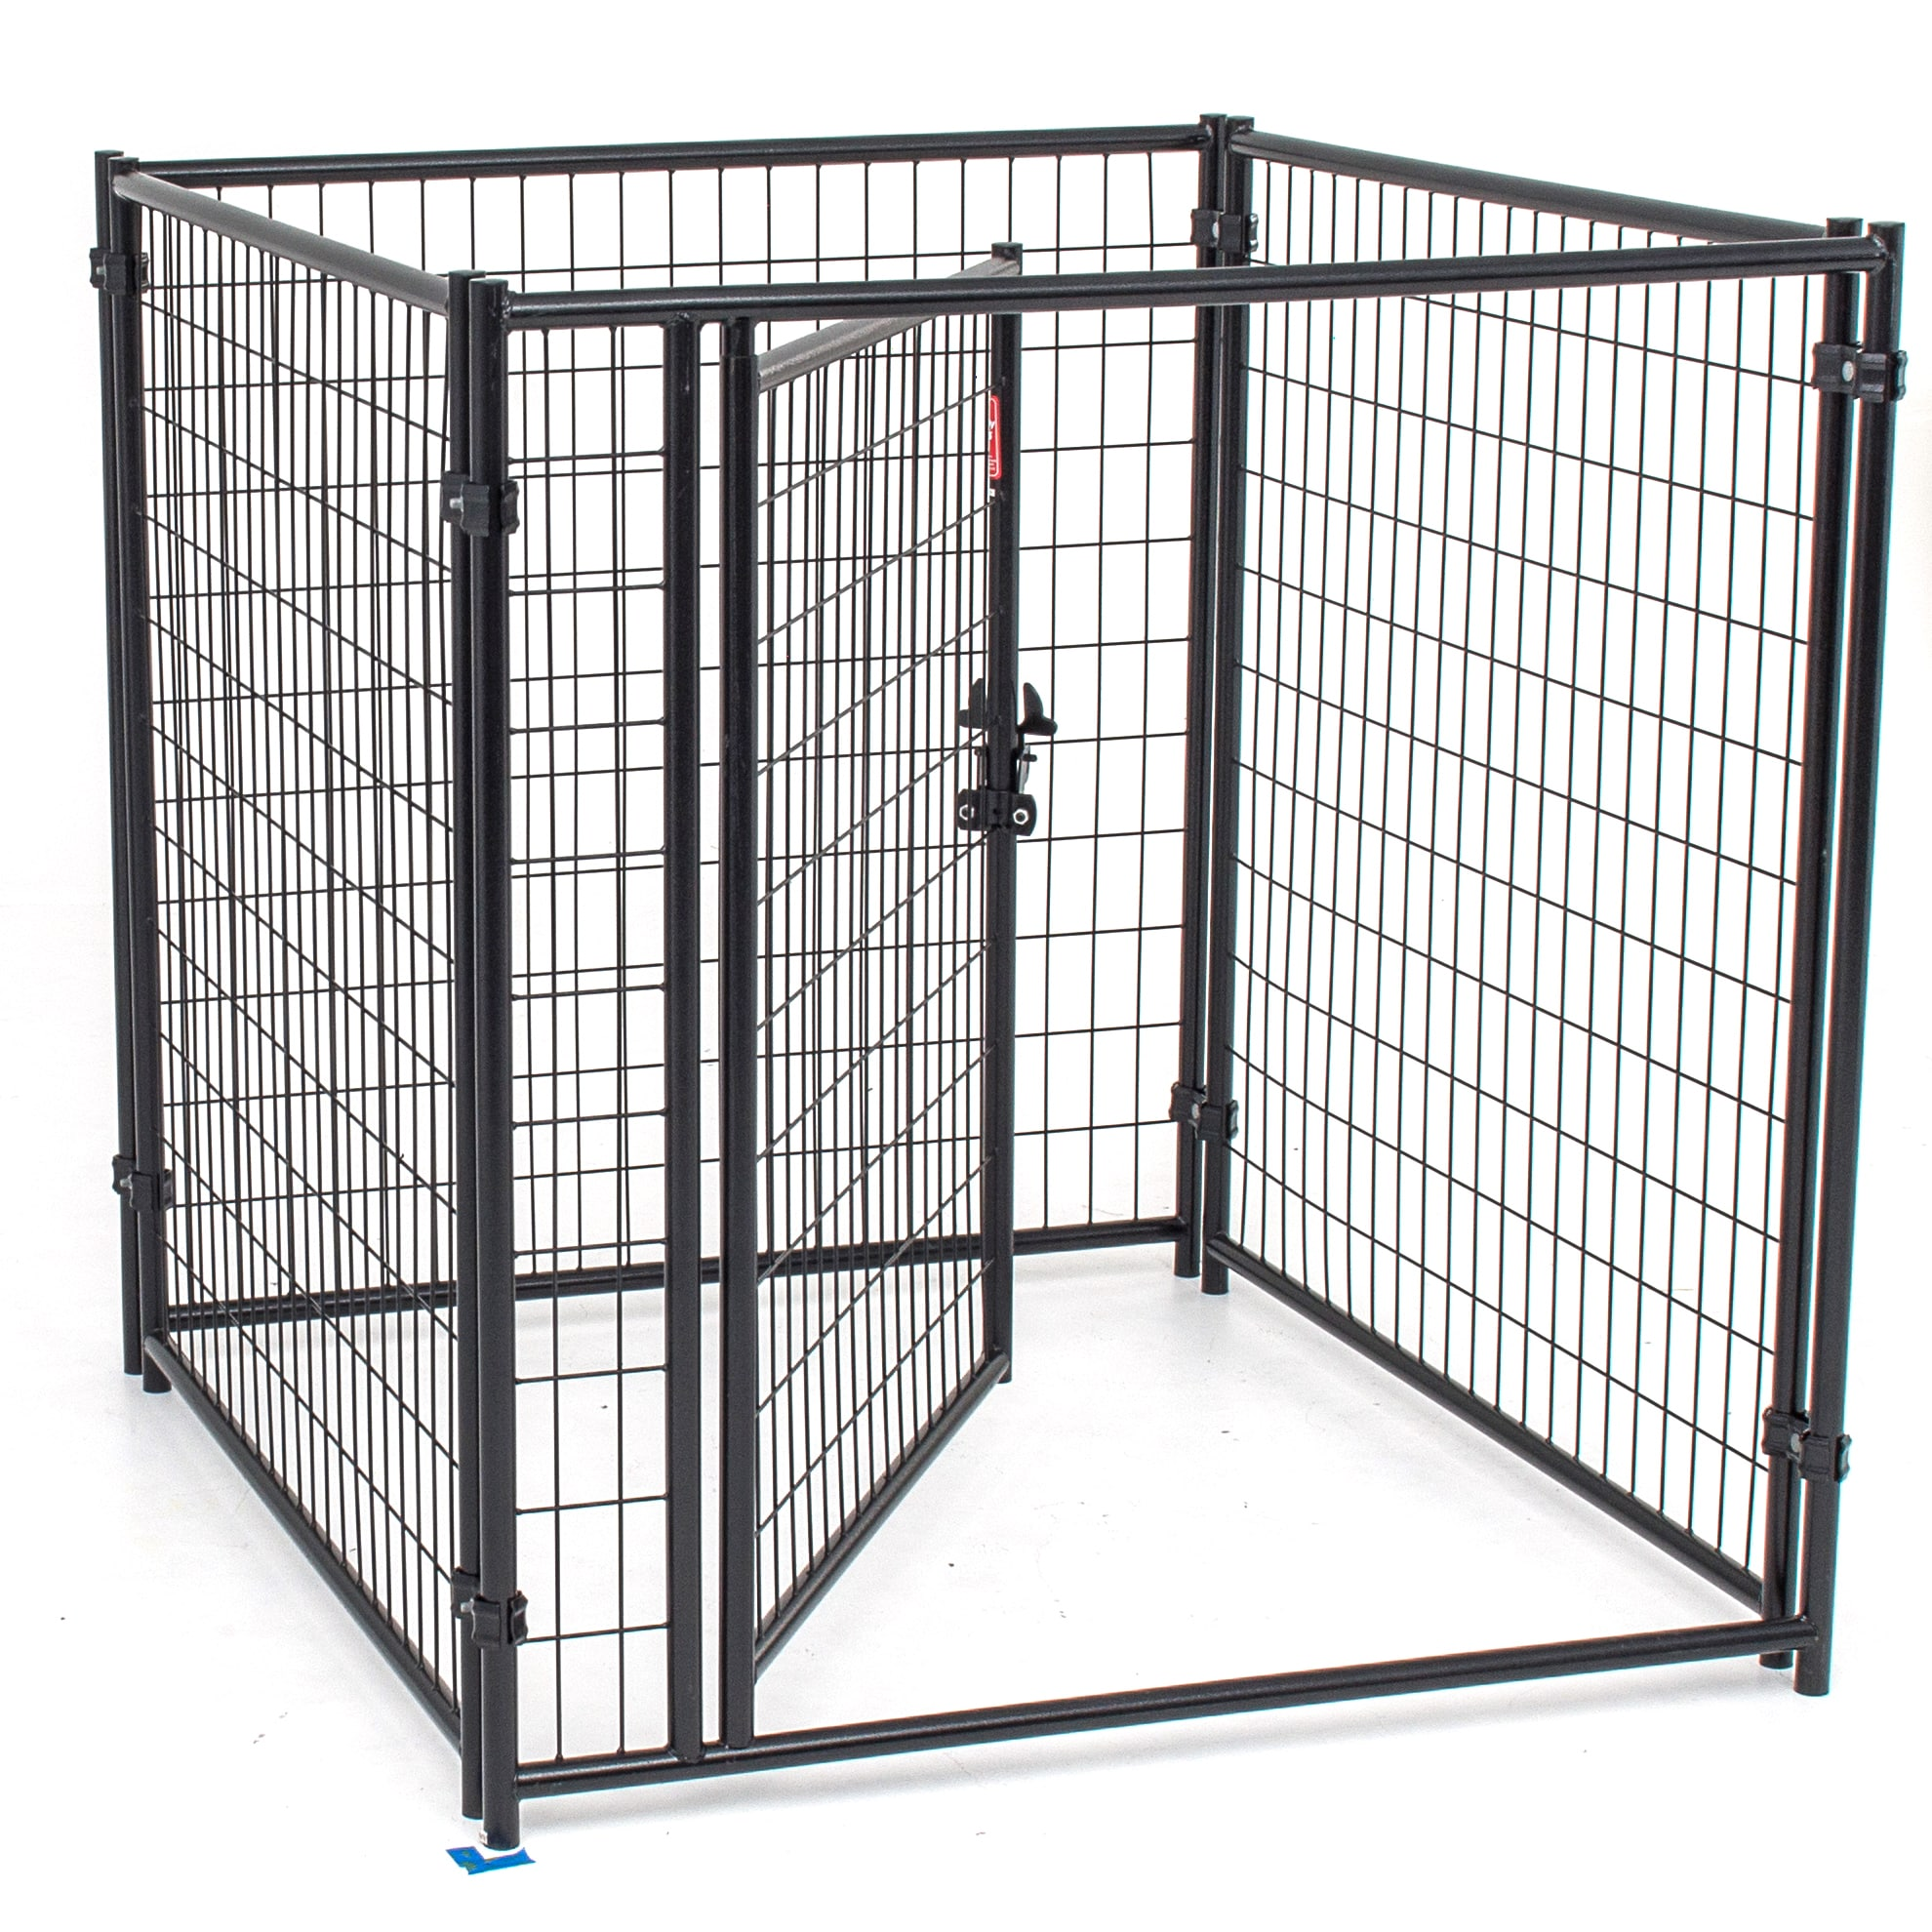 Lucky Dog 4-foot Modular Welded Steel Wire Dog Kennel Kit...